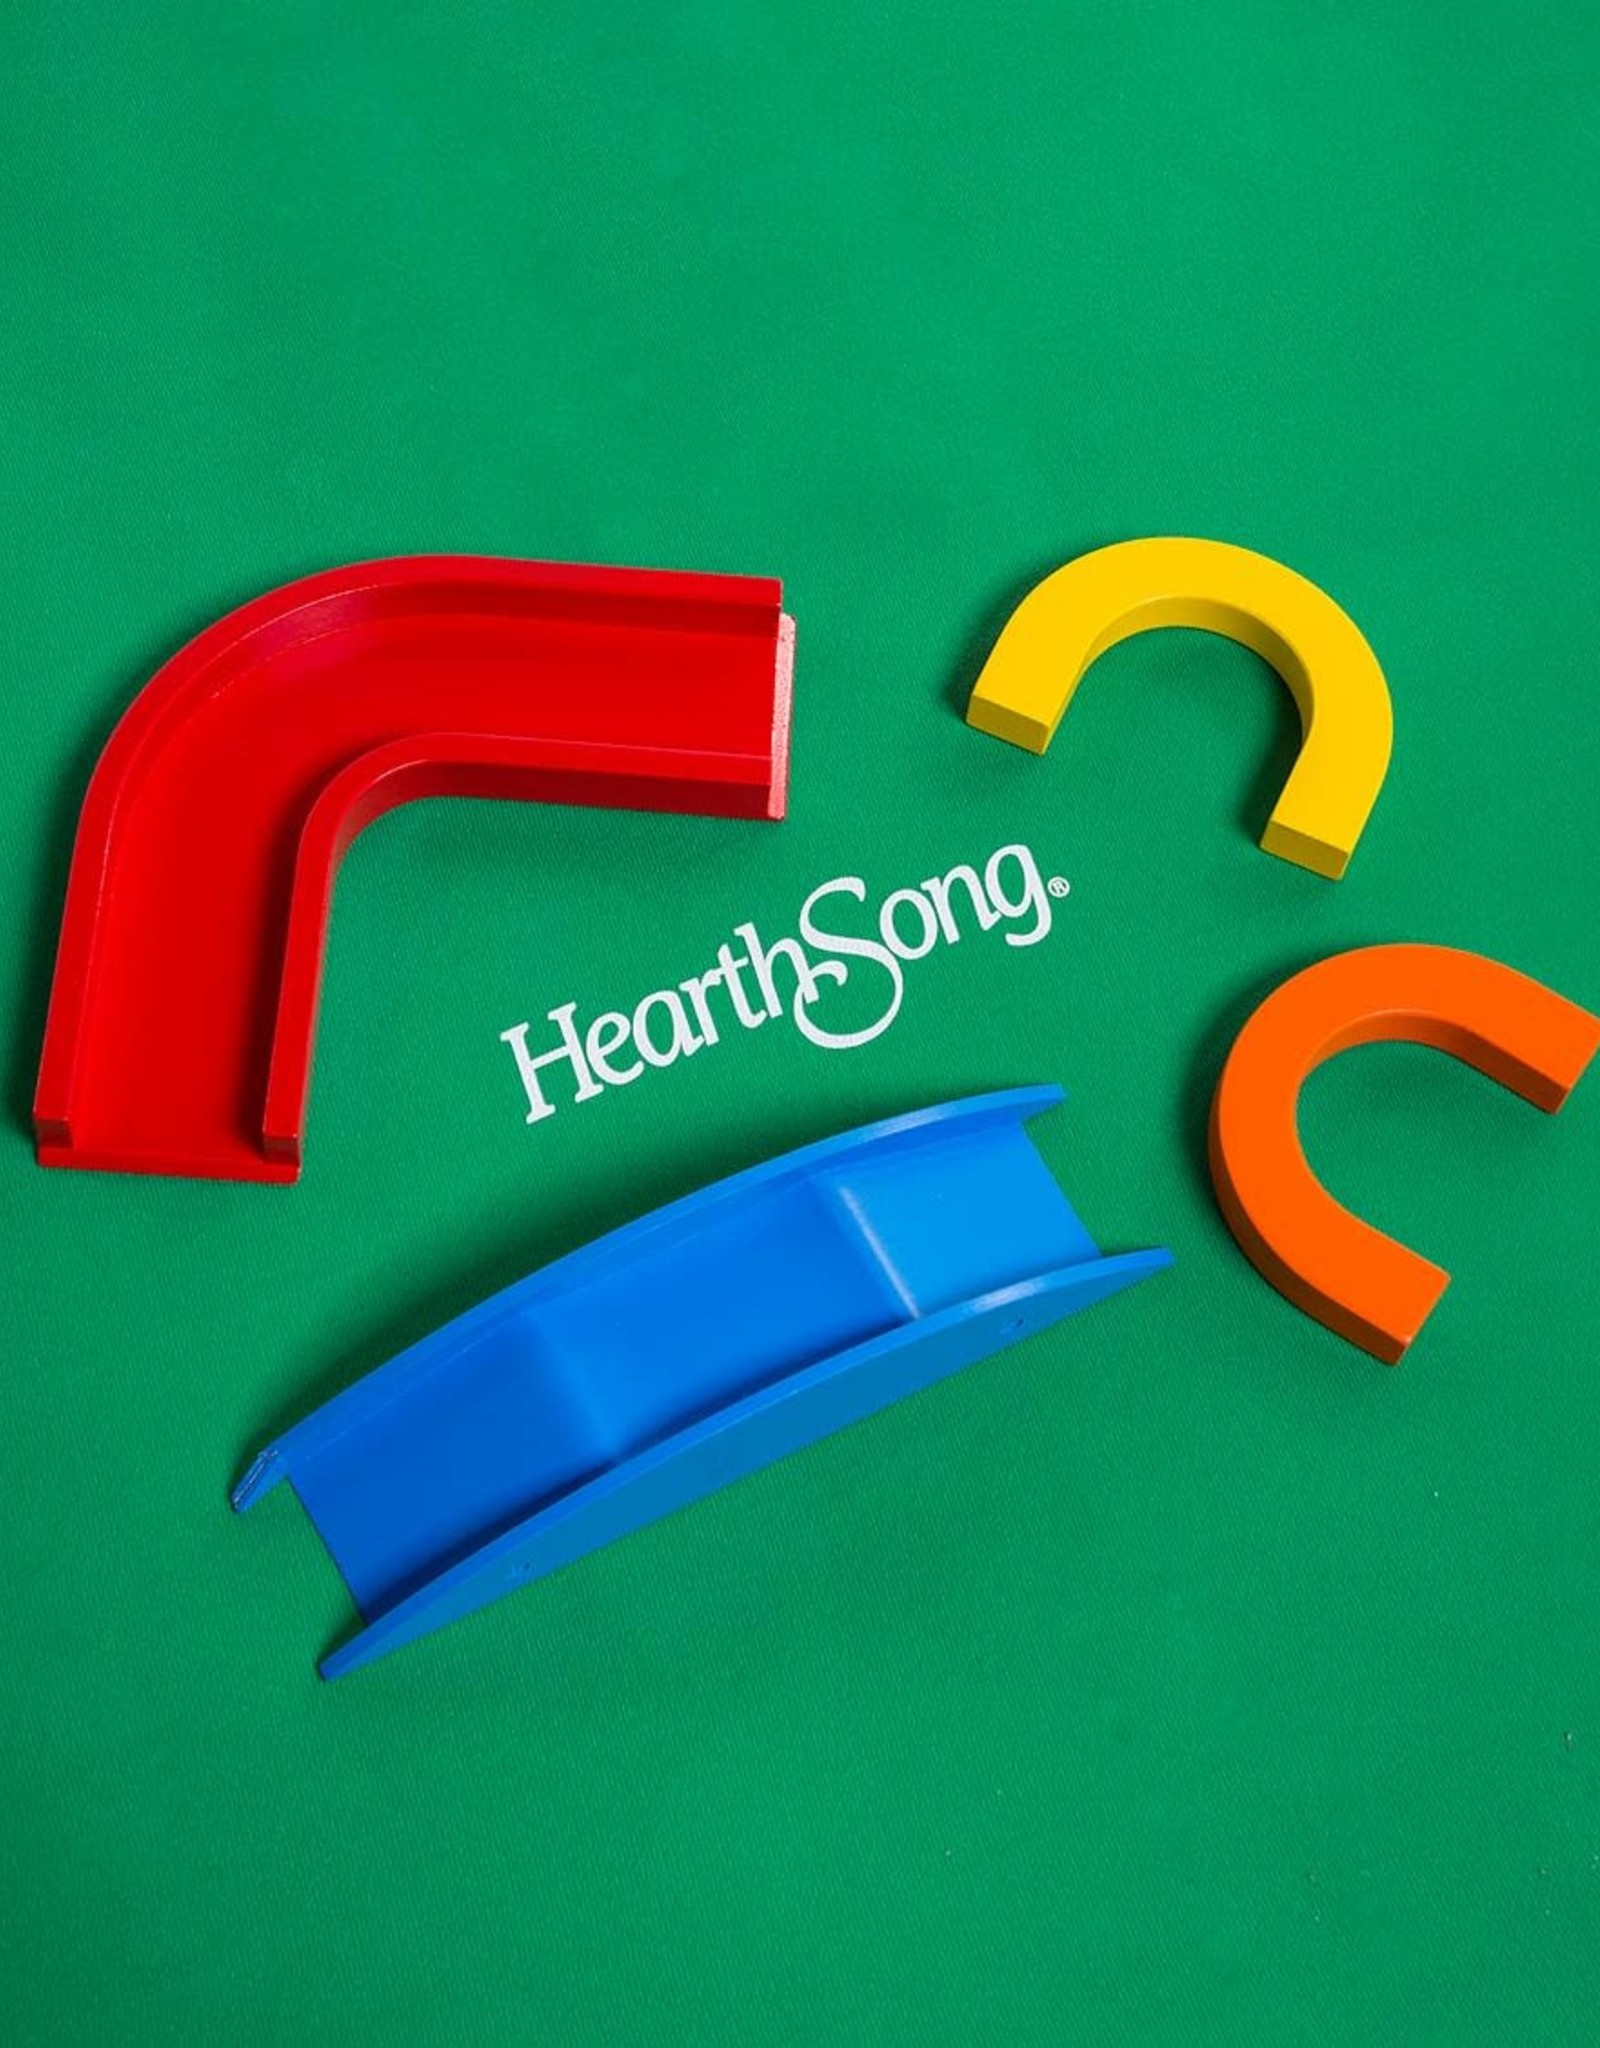 Hearthsong Golf Pool Accessories